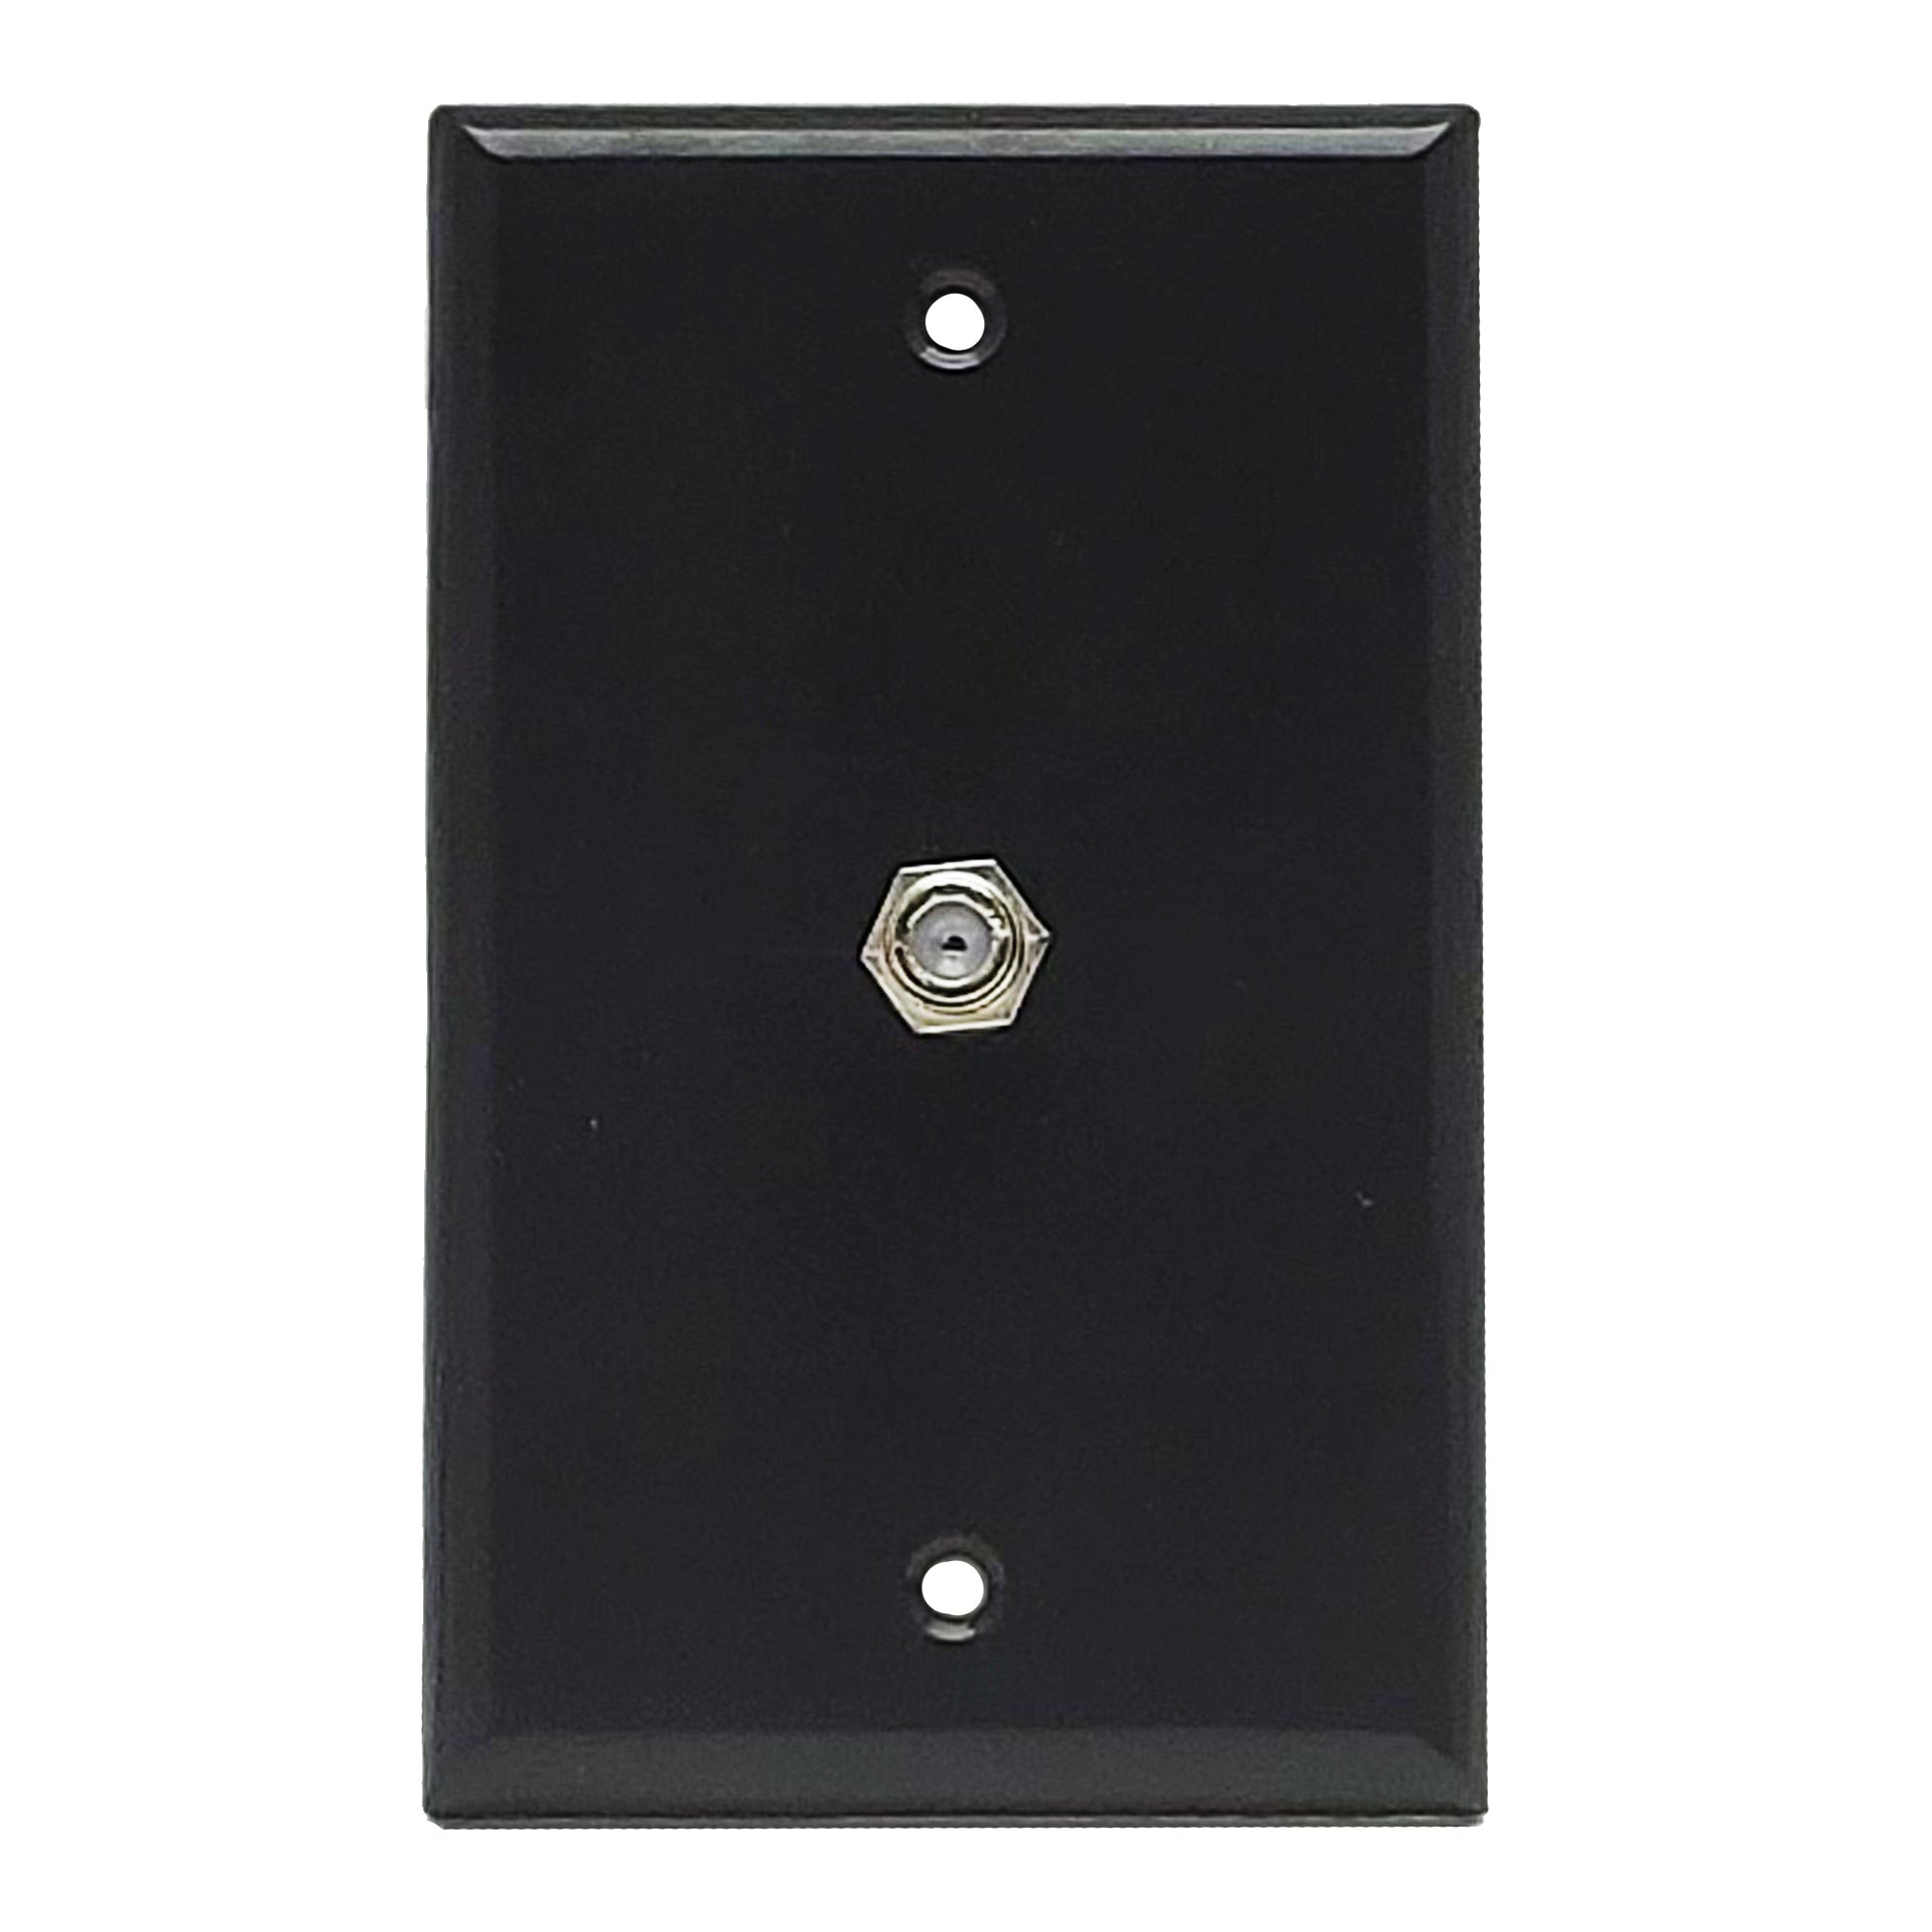 Wall Plate | F81 Coax | Single Port, Black - Conversions Technology